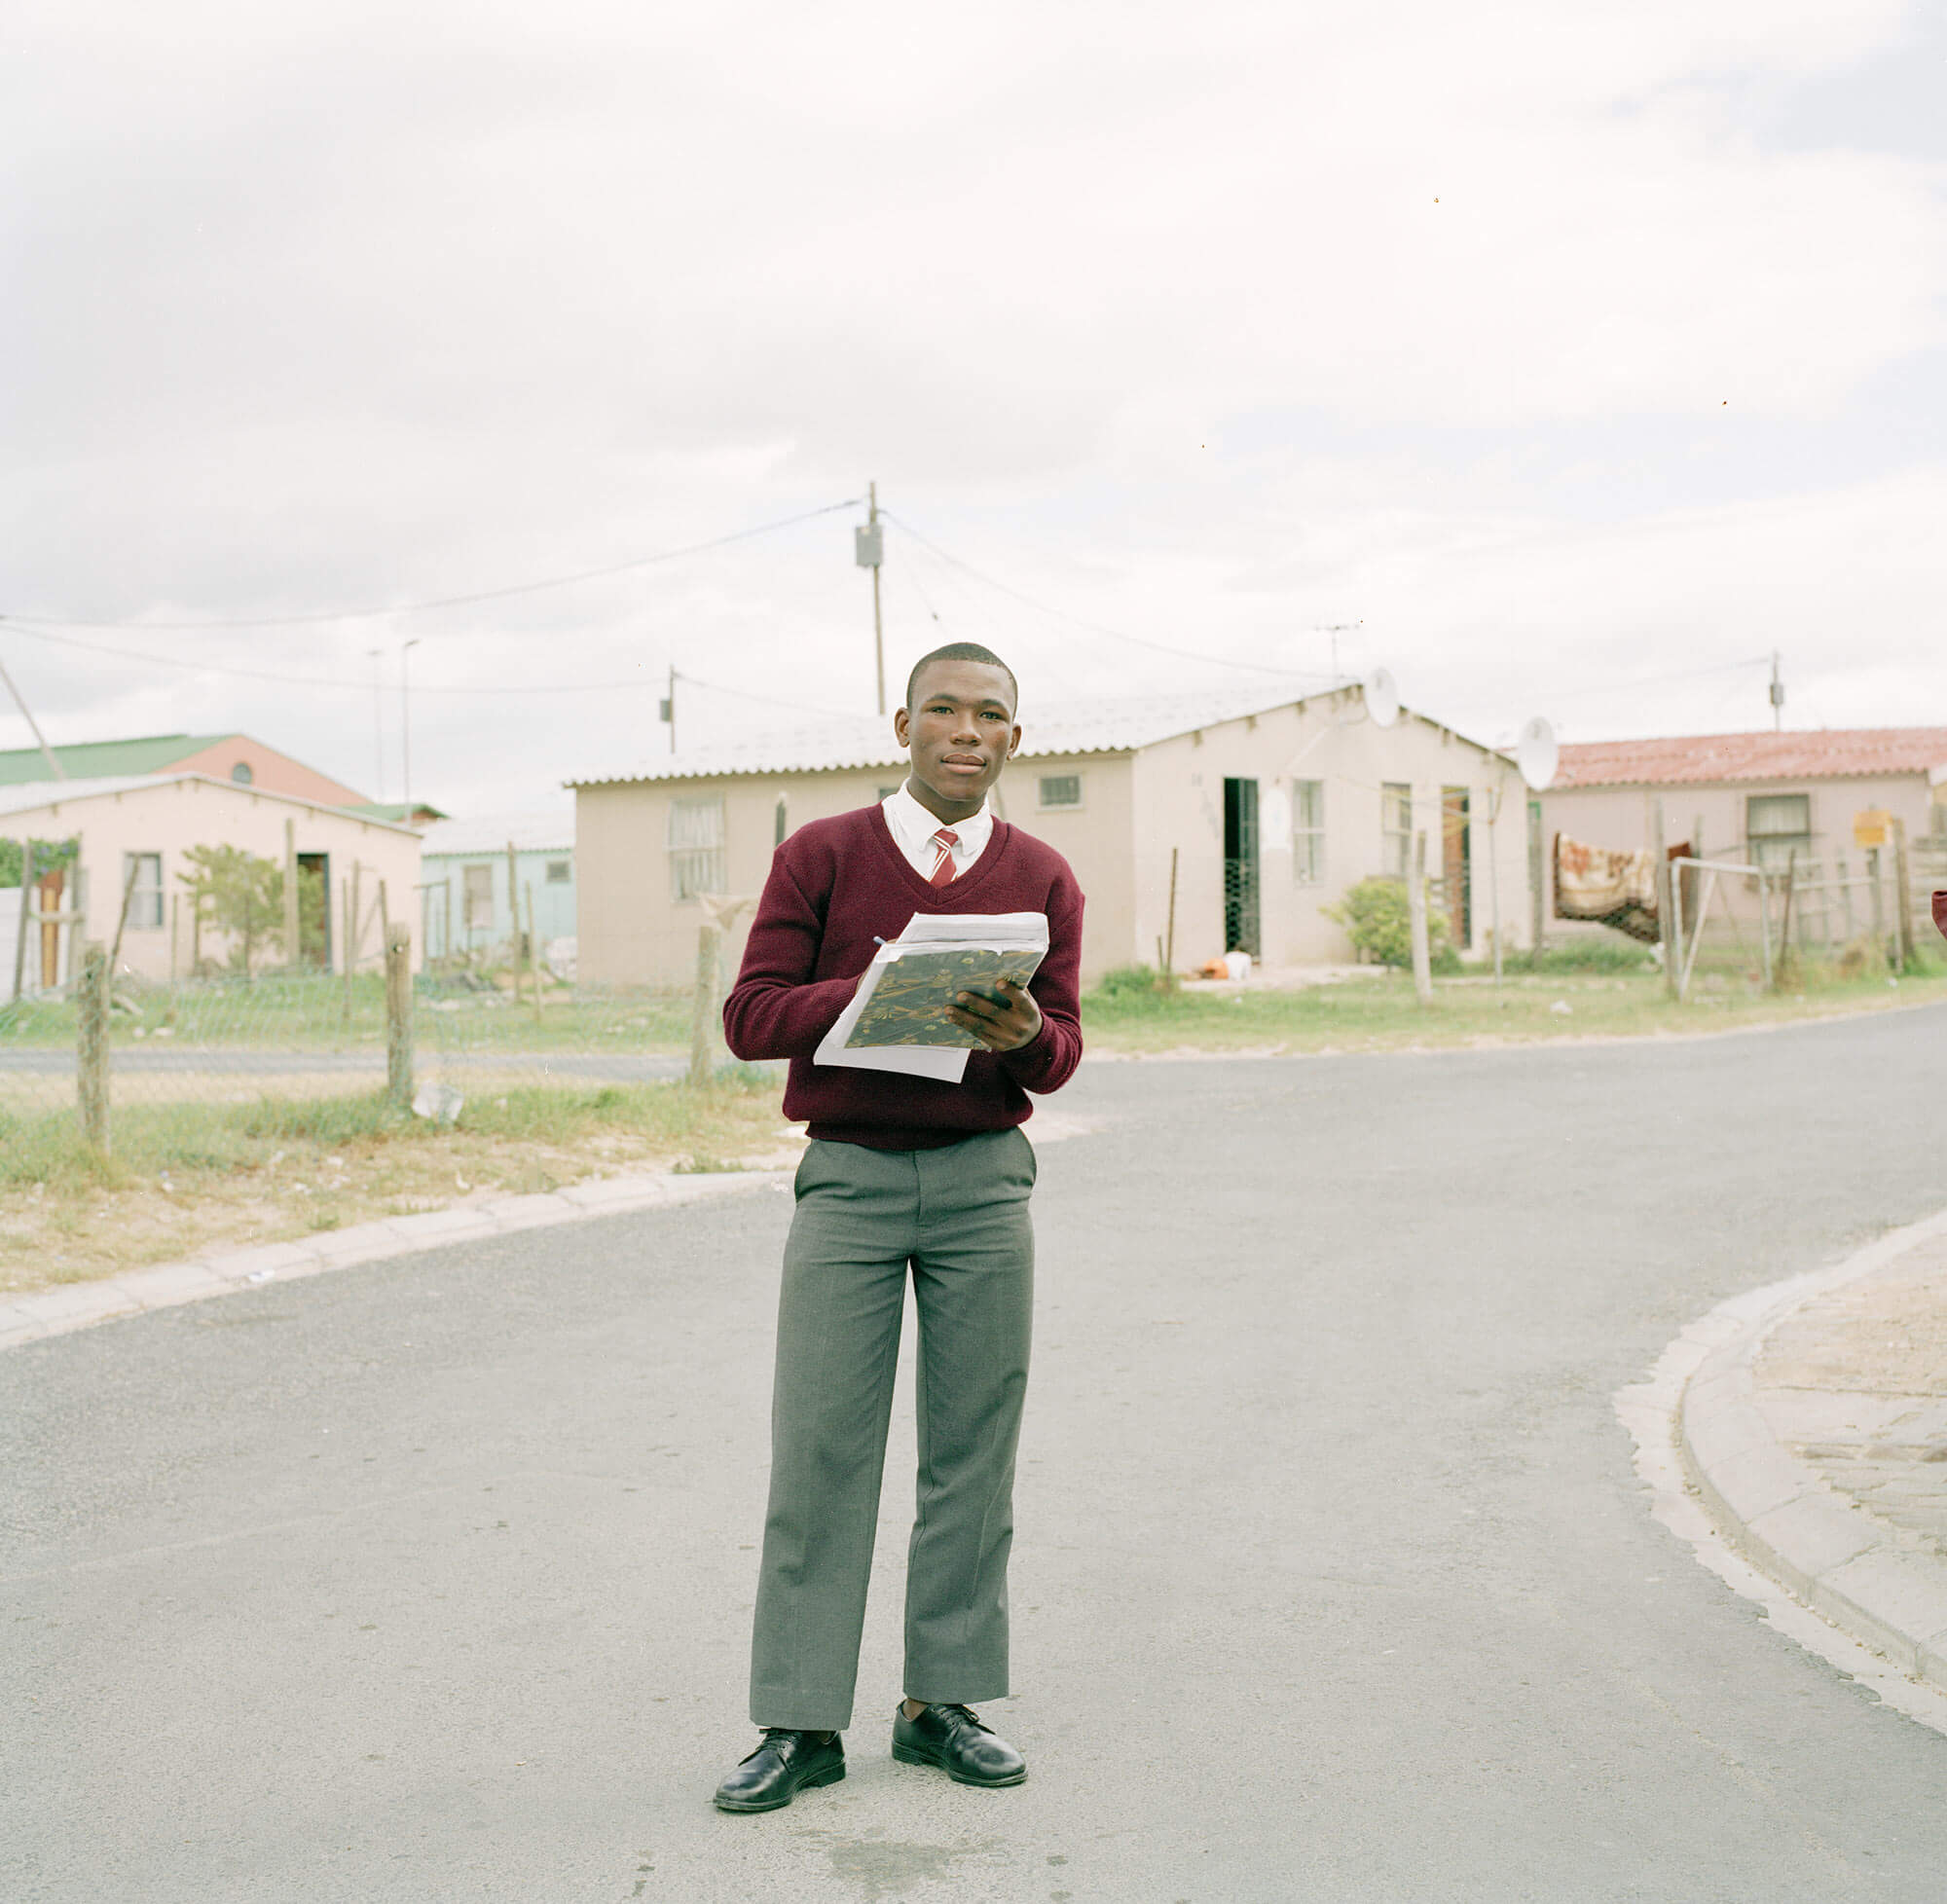 Claudio Rasano SOUTH AFRICA EVERYONE LIVE IN THE SAME PLACE LIKE BEFORE portrait of man in suit with clipboard